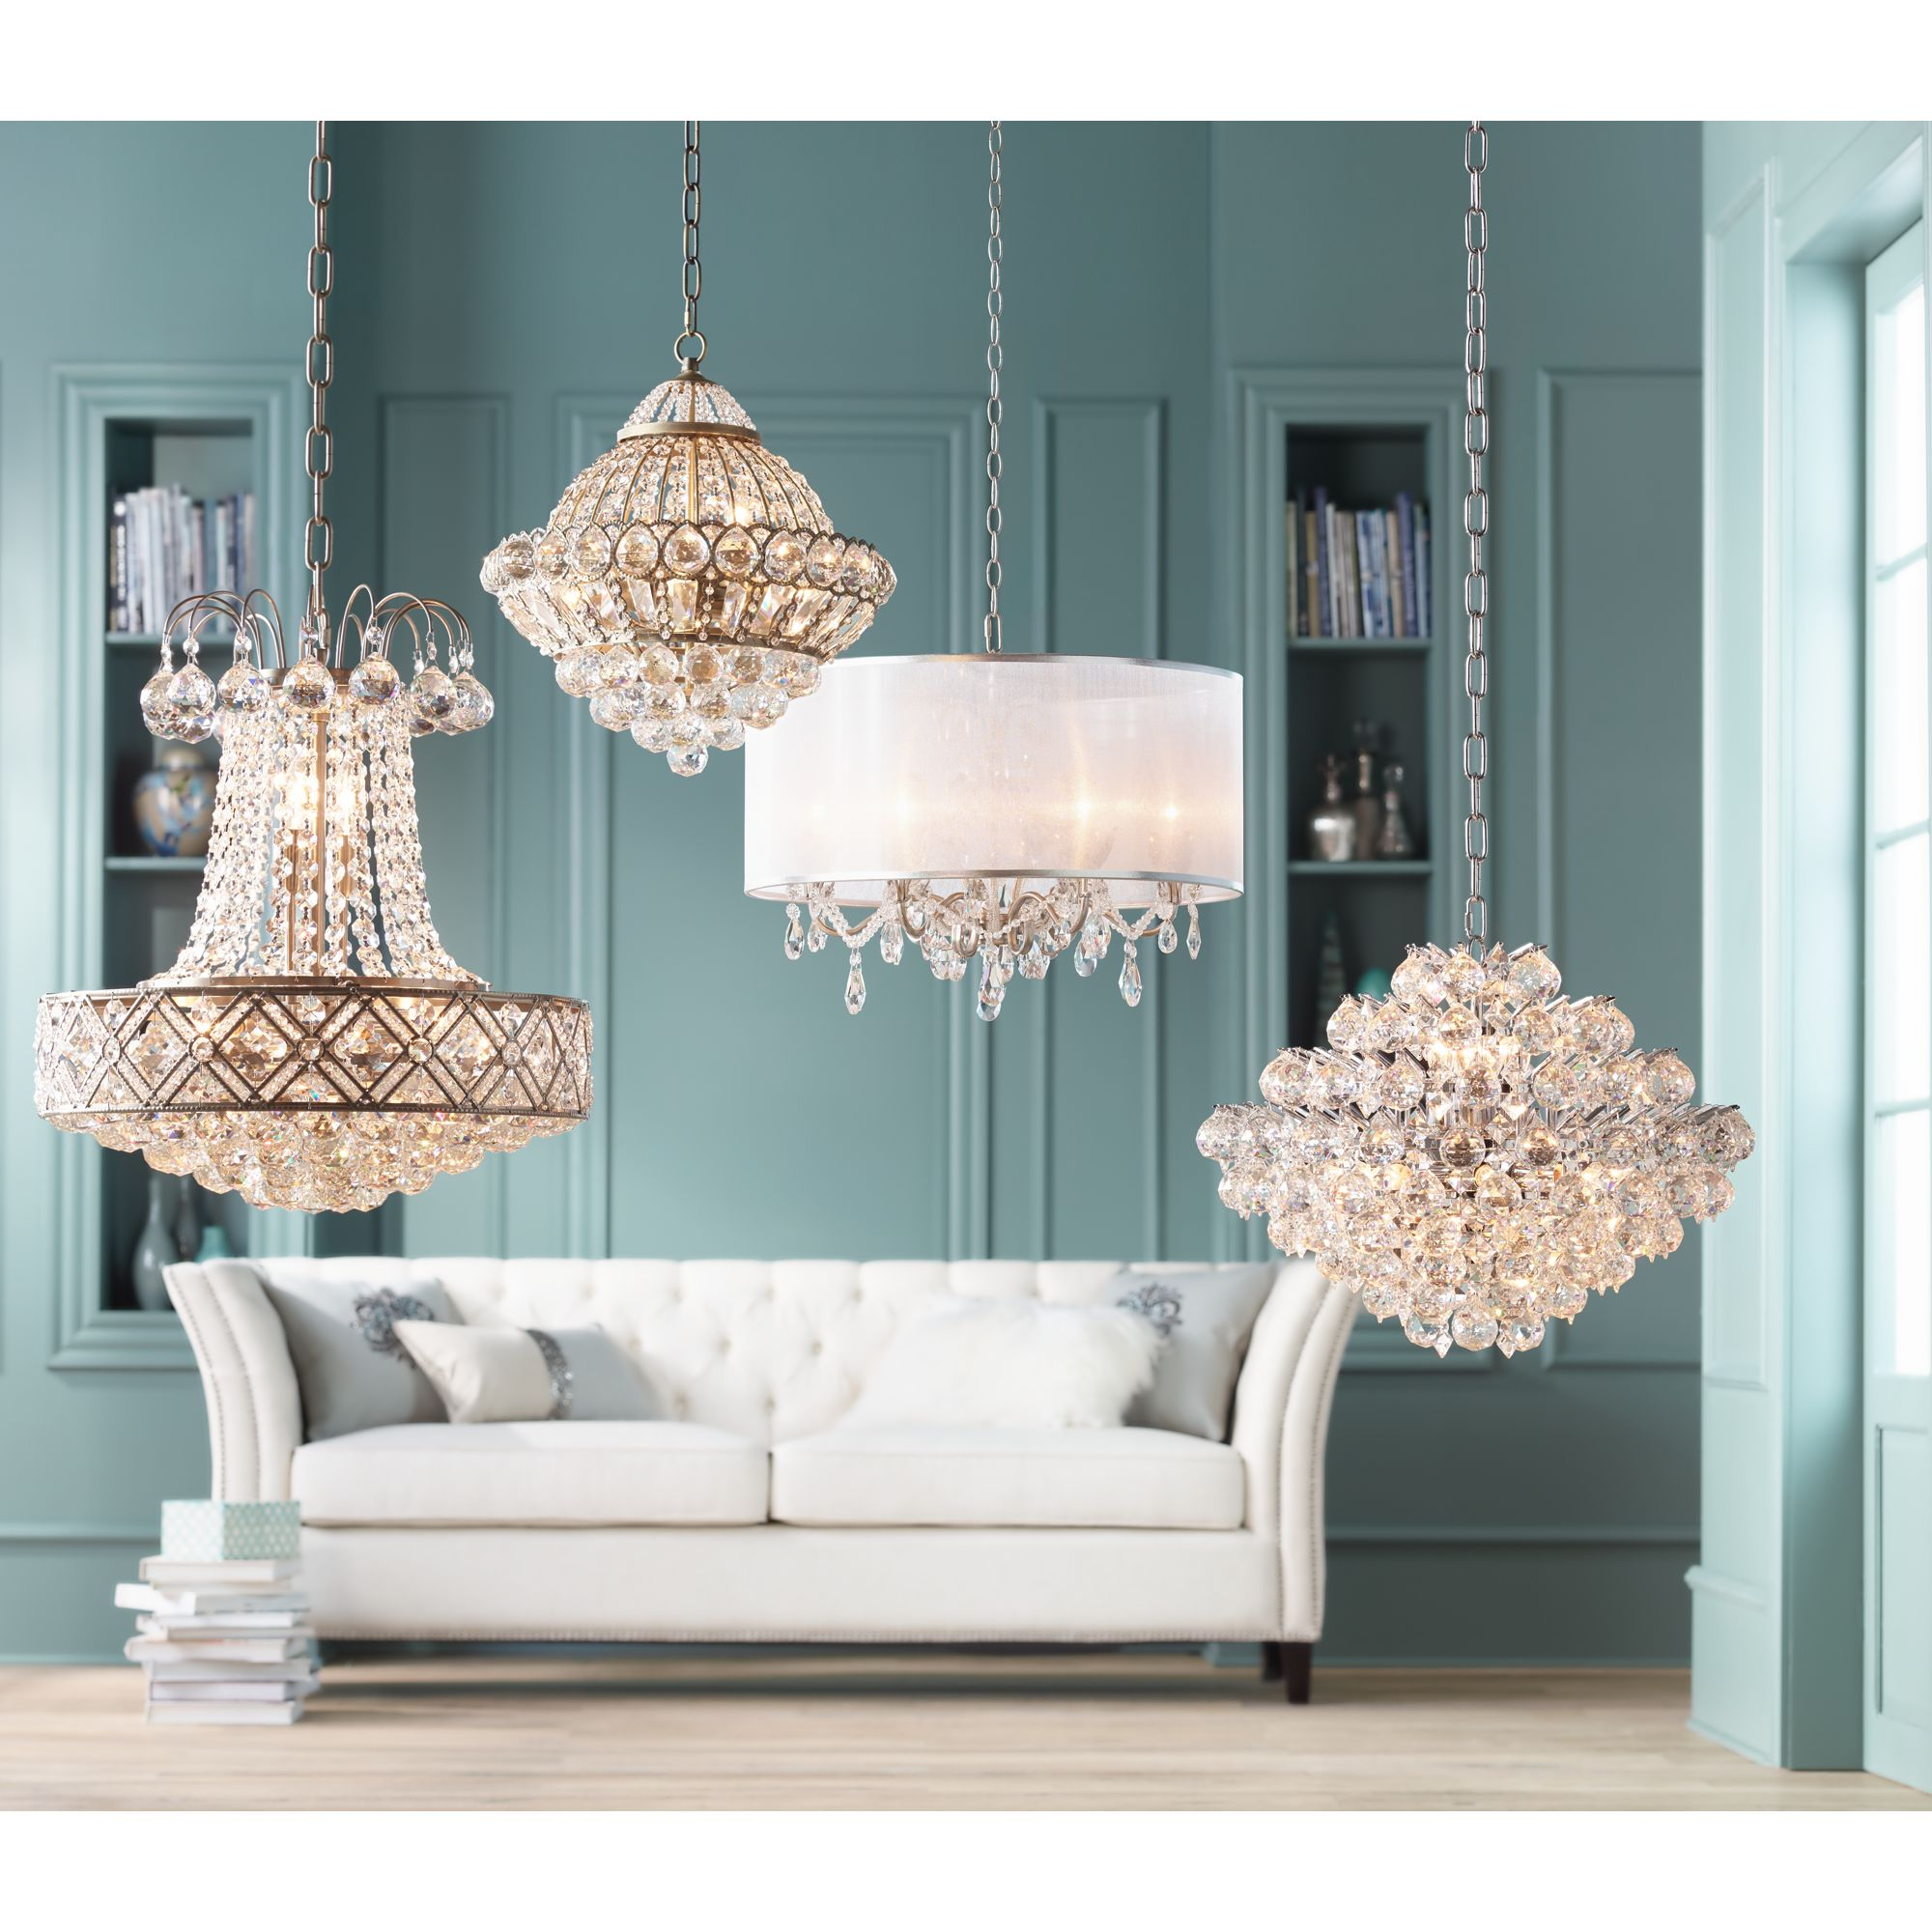 Vienna Full Spectrum Wallingford 16 Wide Antique Br And Crystal Chandelier